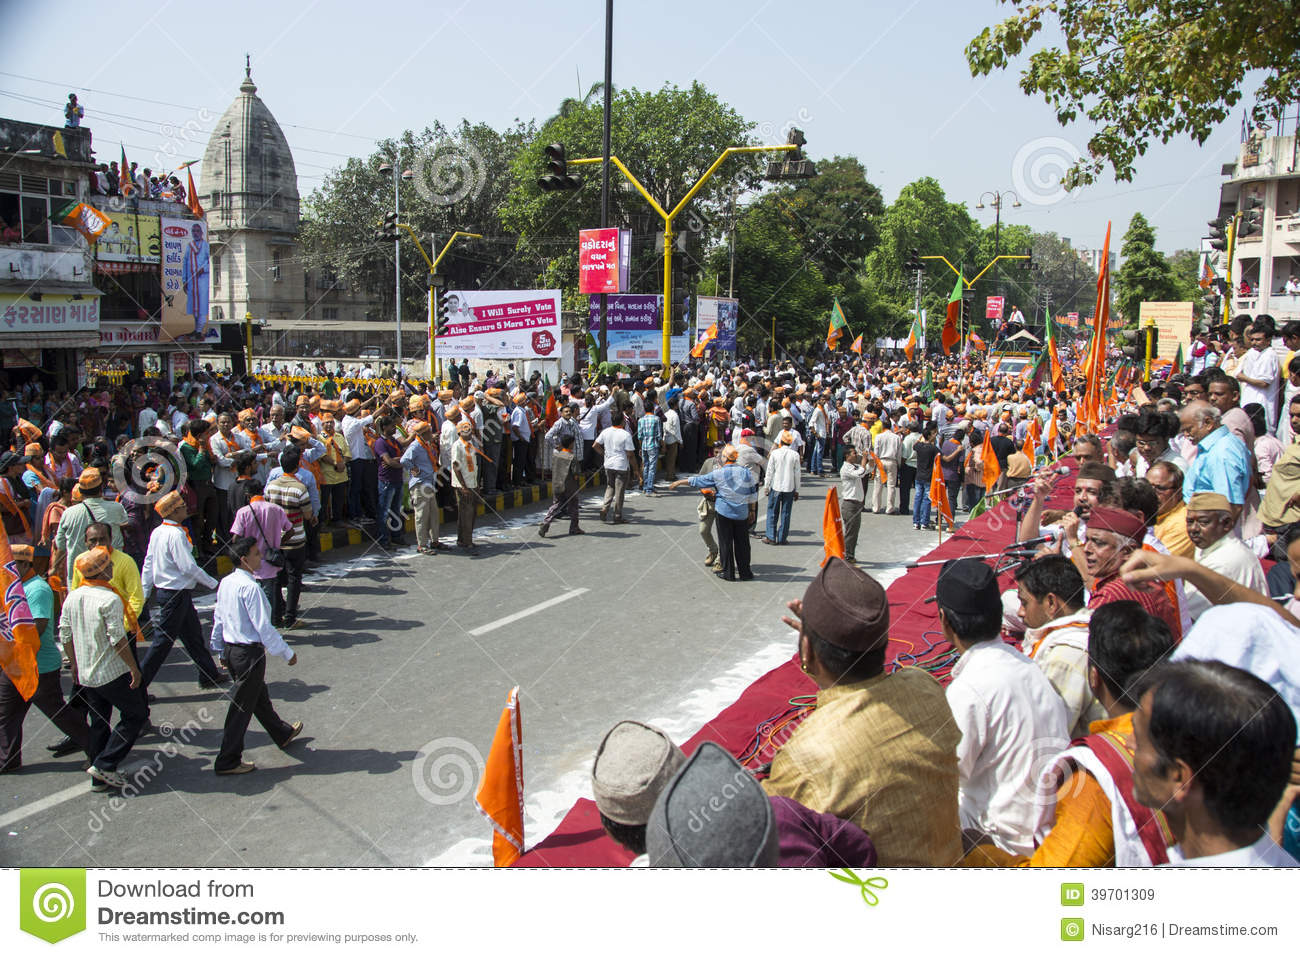 narendra modi 2 essay A bjp victory could pave the way for its party leader narendra modi to become prime minister of the world's most populous democracy, a rising economic power, and a nuclear-armed western ally modi has positioned himself as a pragmatic technocrat.